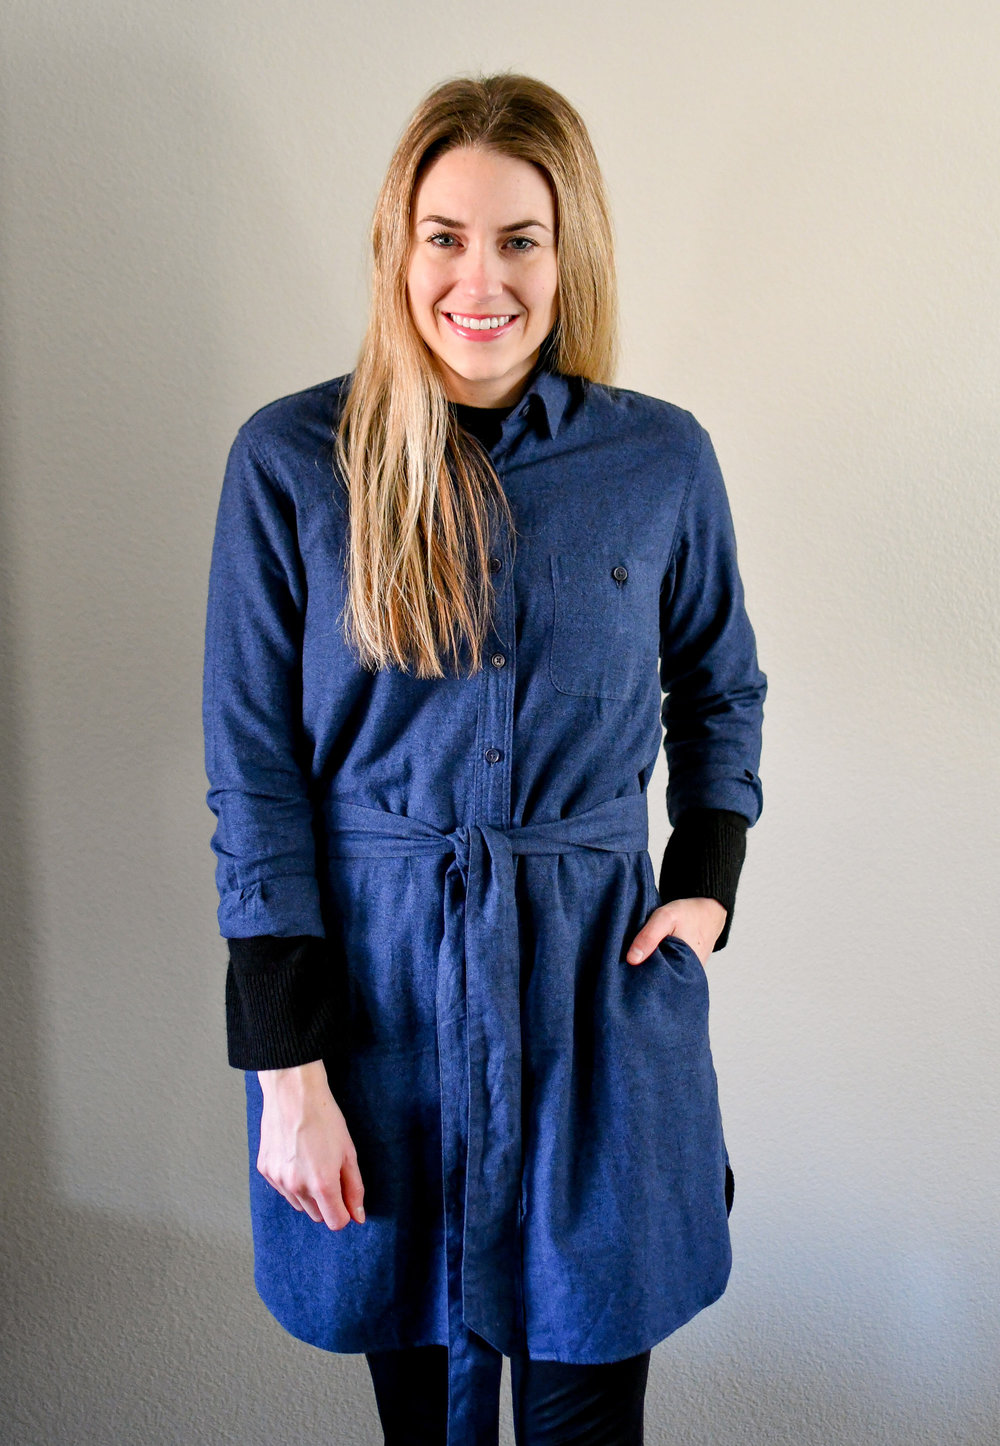 Flannel shirt dress winter outfit — Cotton Cashmere Cat Hair